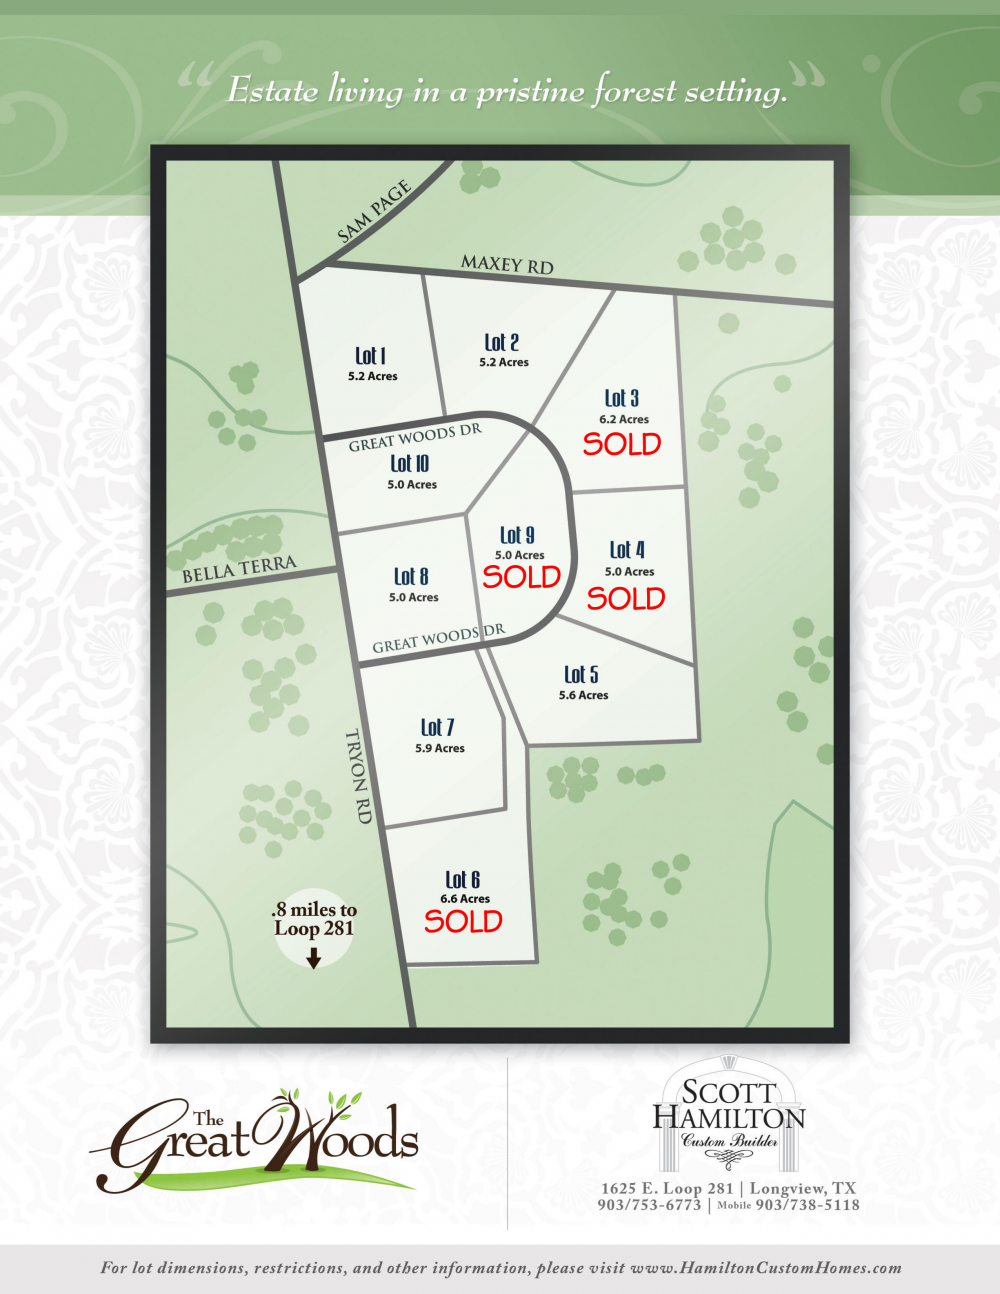 Great Woods Lots | Scott Hamilton Custom Homes